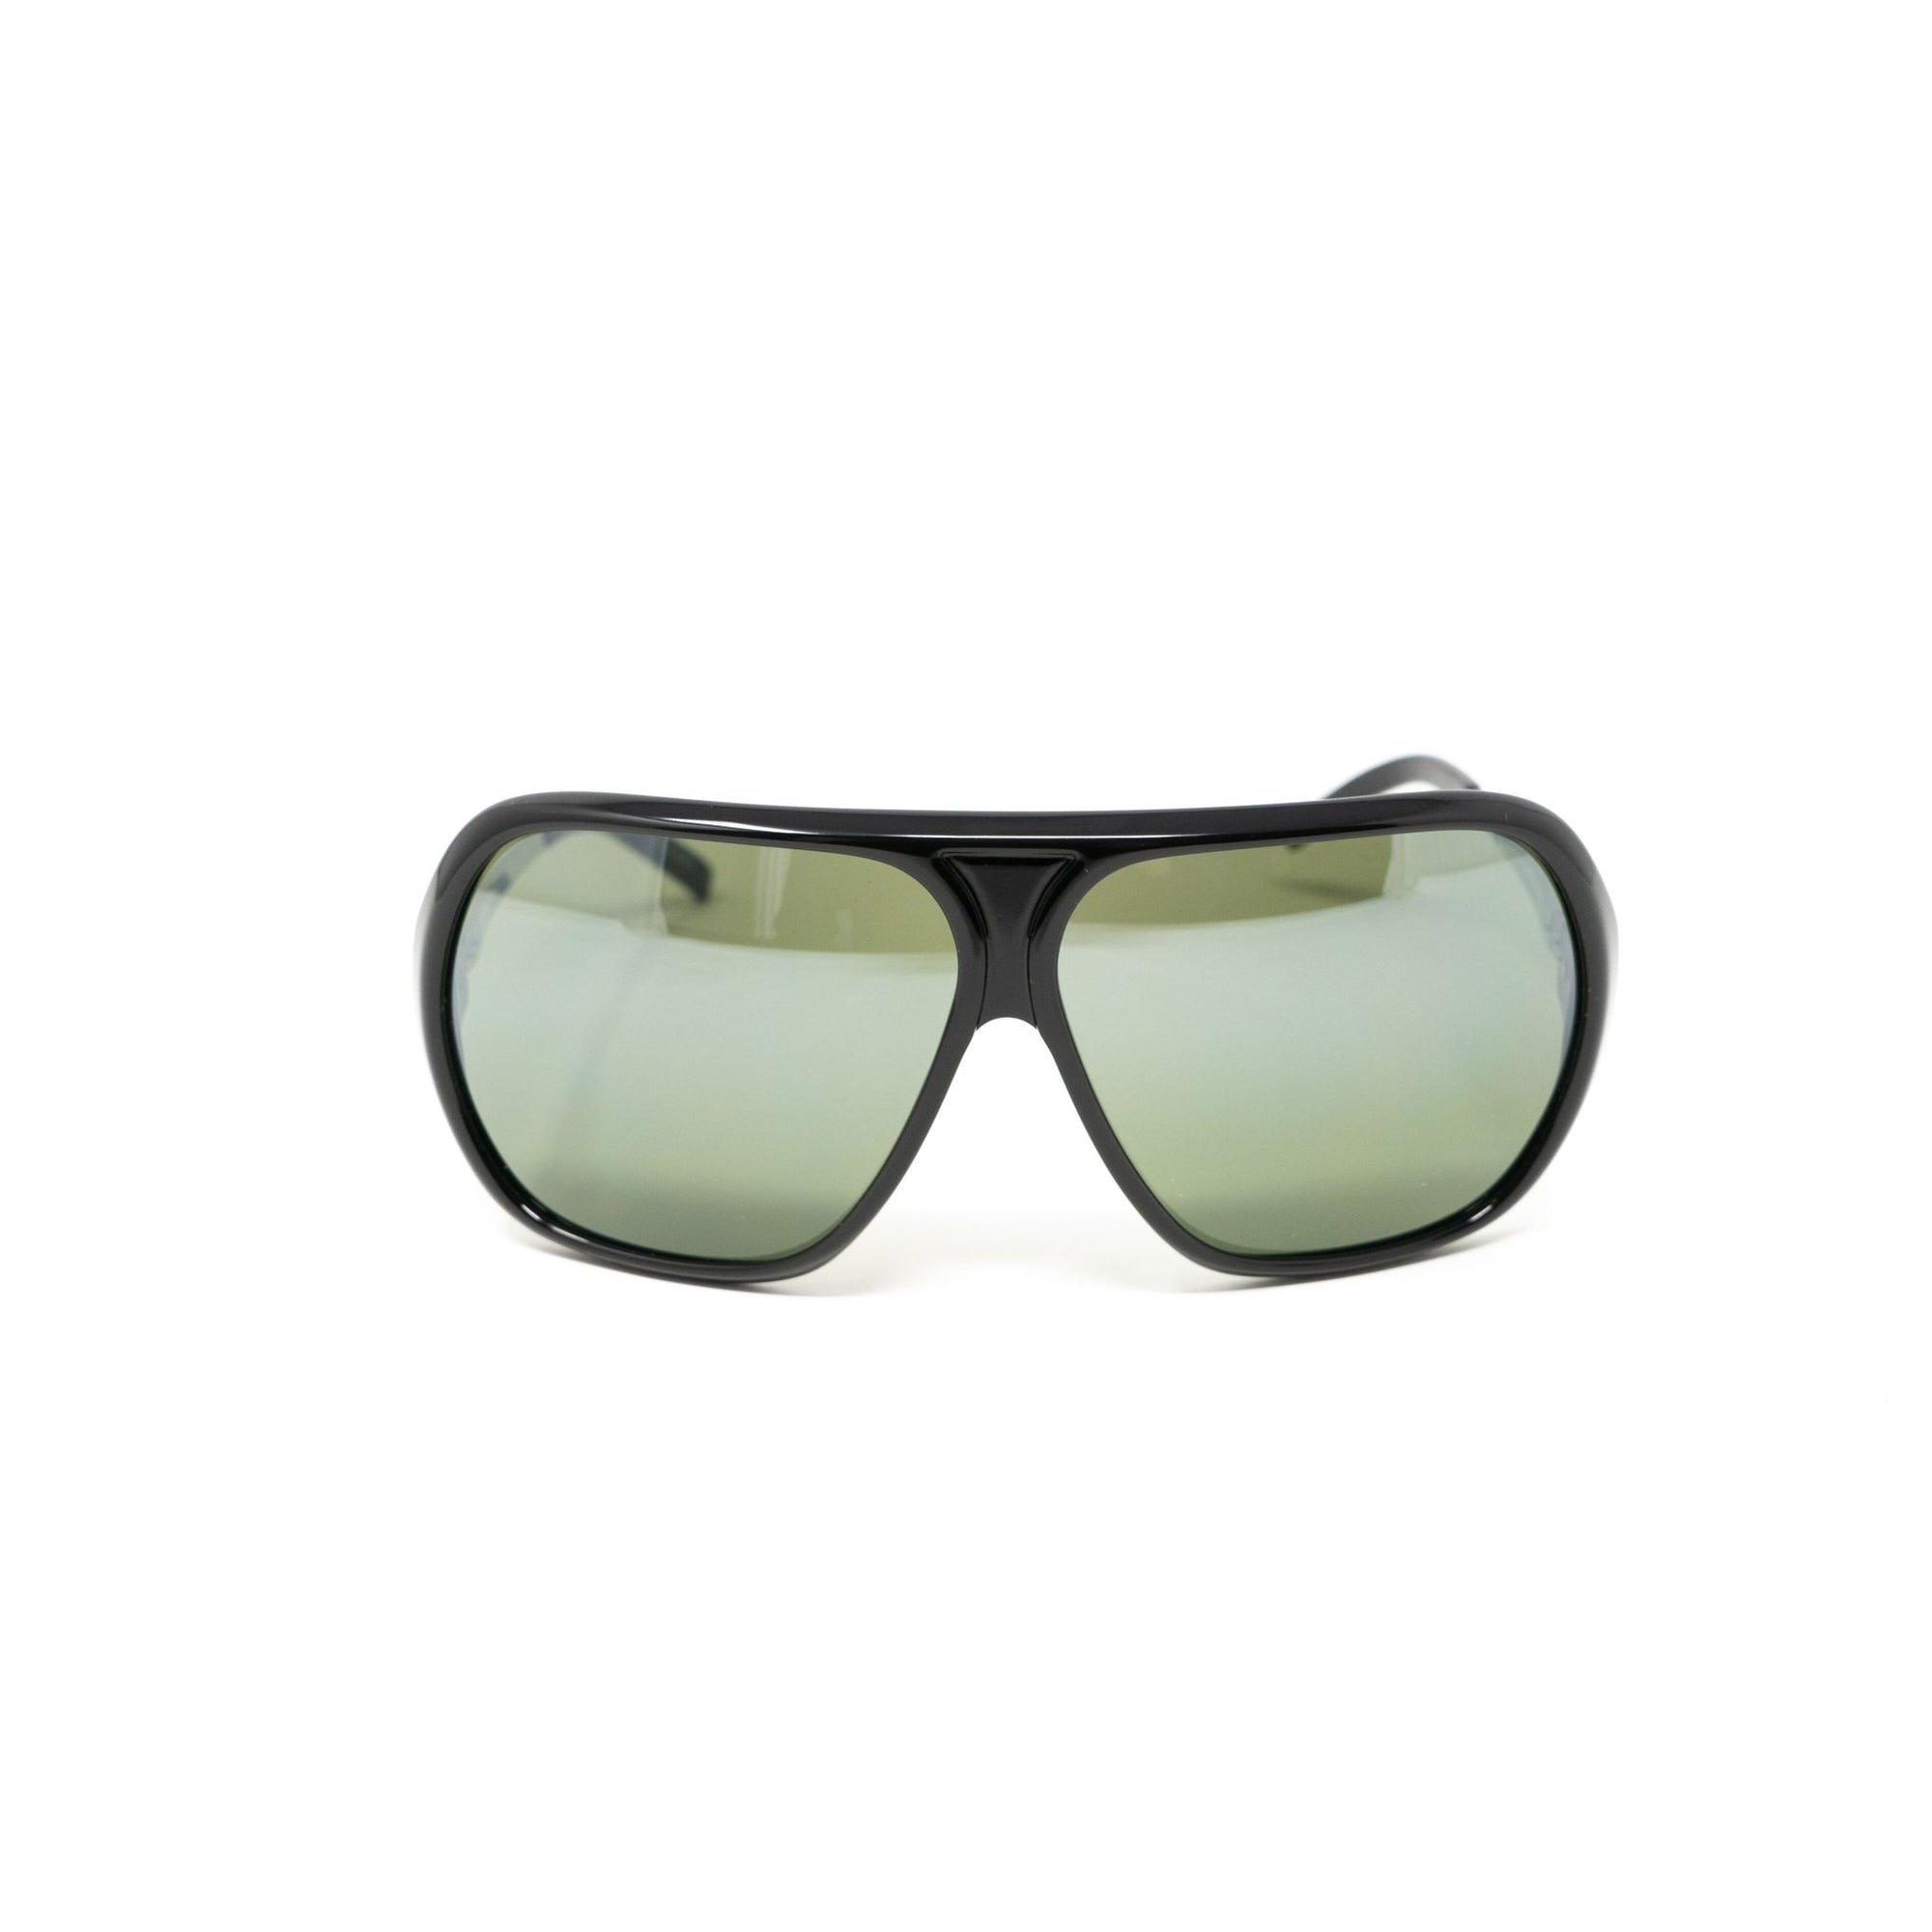 Raf Simons Sunglasses Oversized Frame Black and Green Lenses Category 3 - 8RAF2ABLACKMIRROR - Watches & Crystals